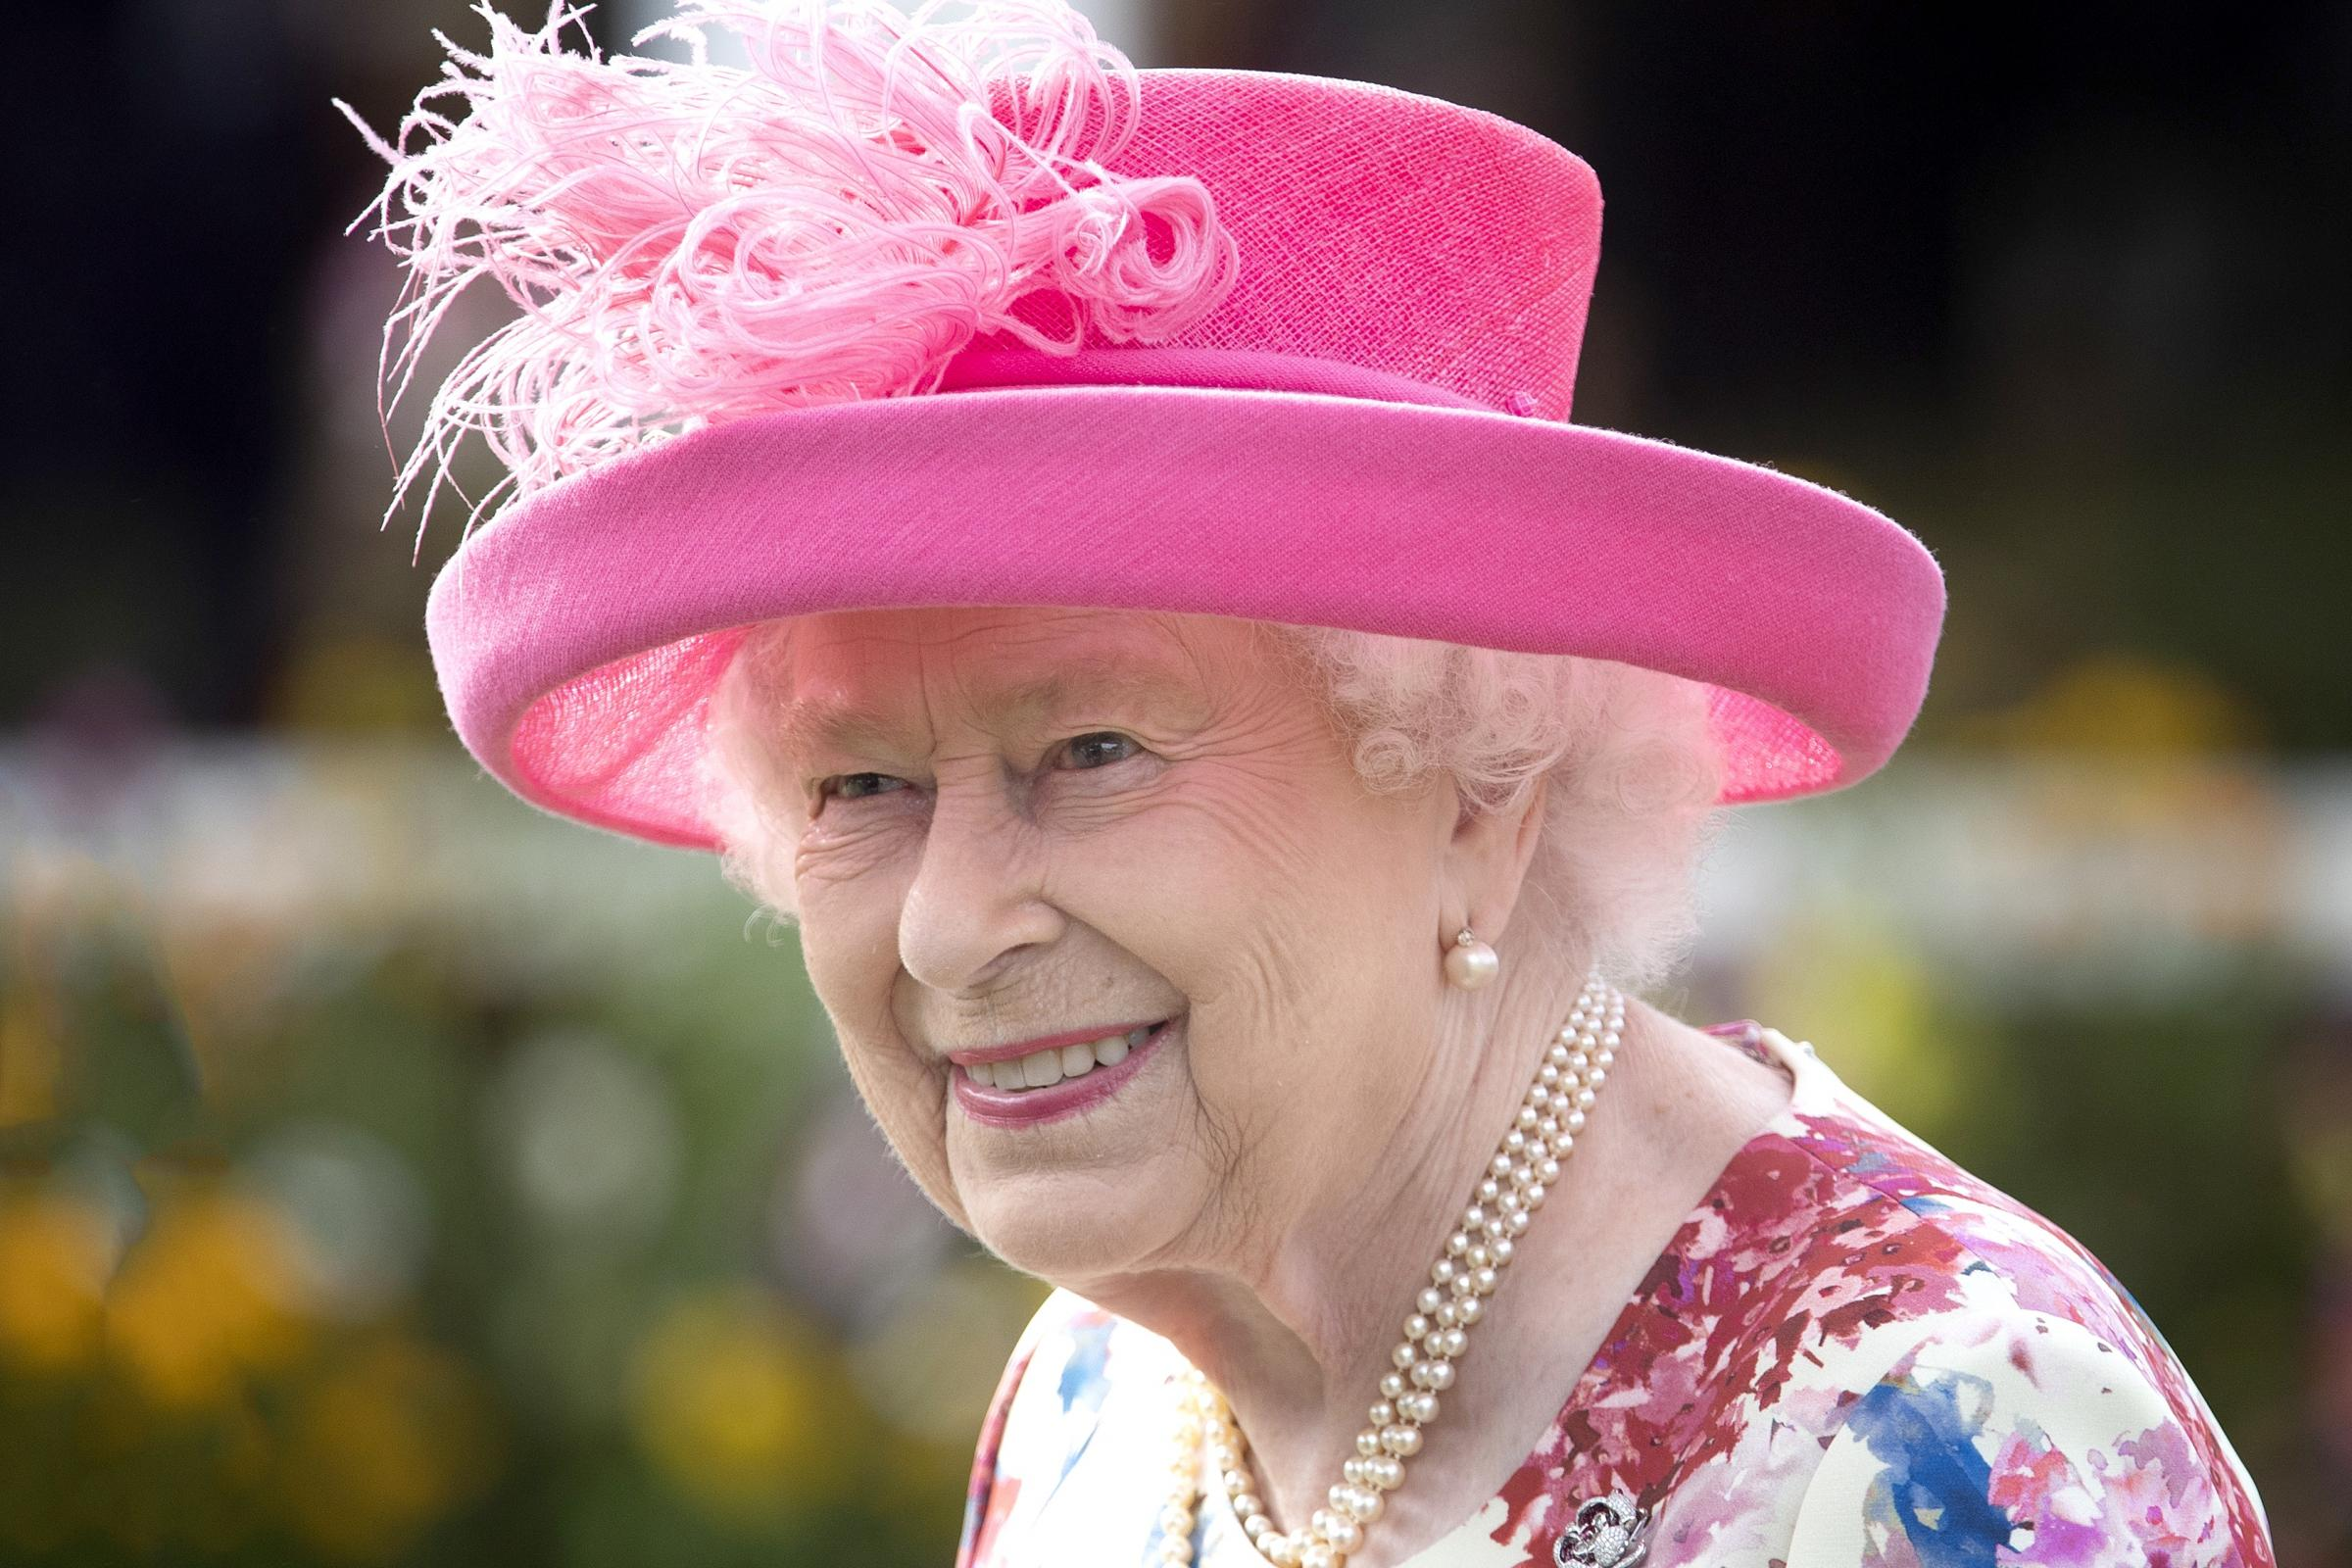 REVEALED: Details of Queen's visit to Bracknell confirmed